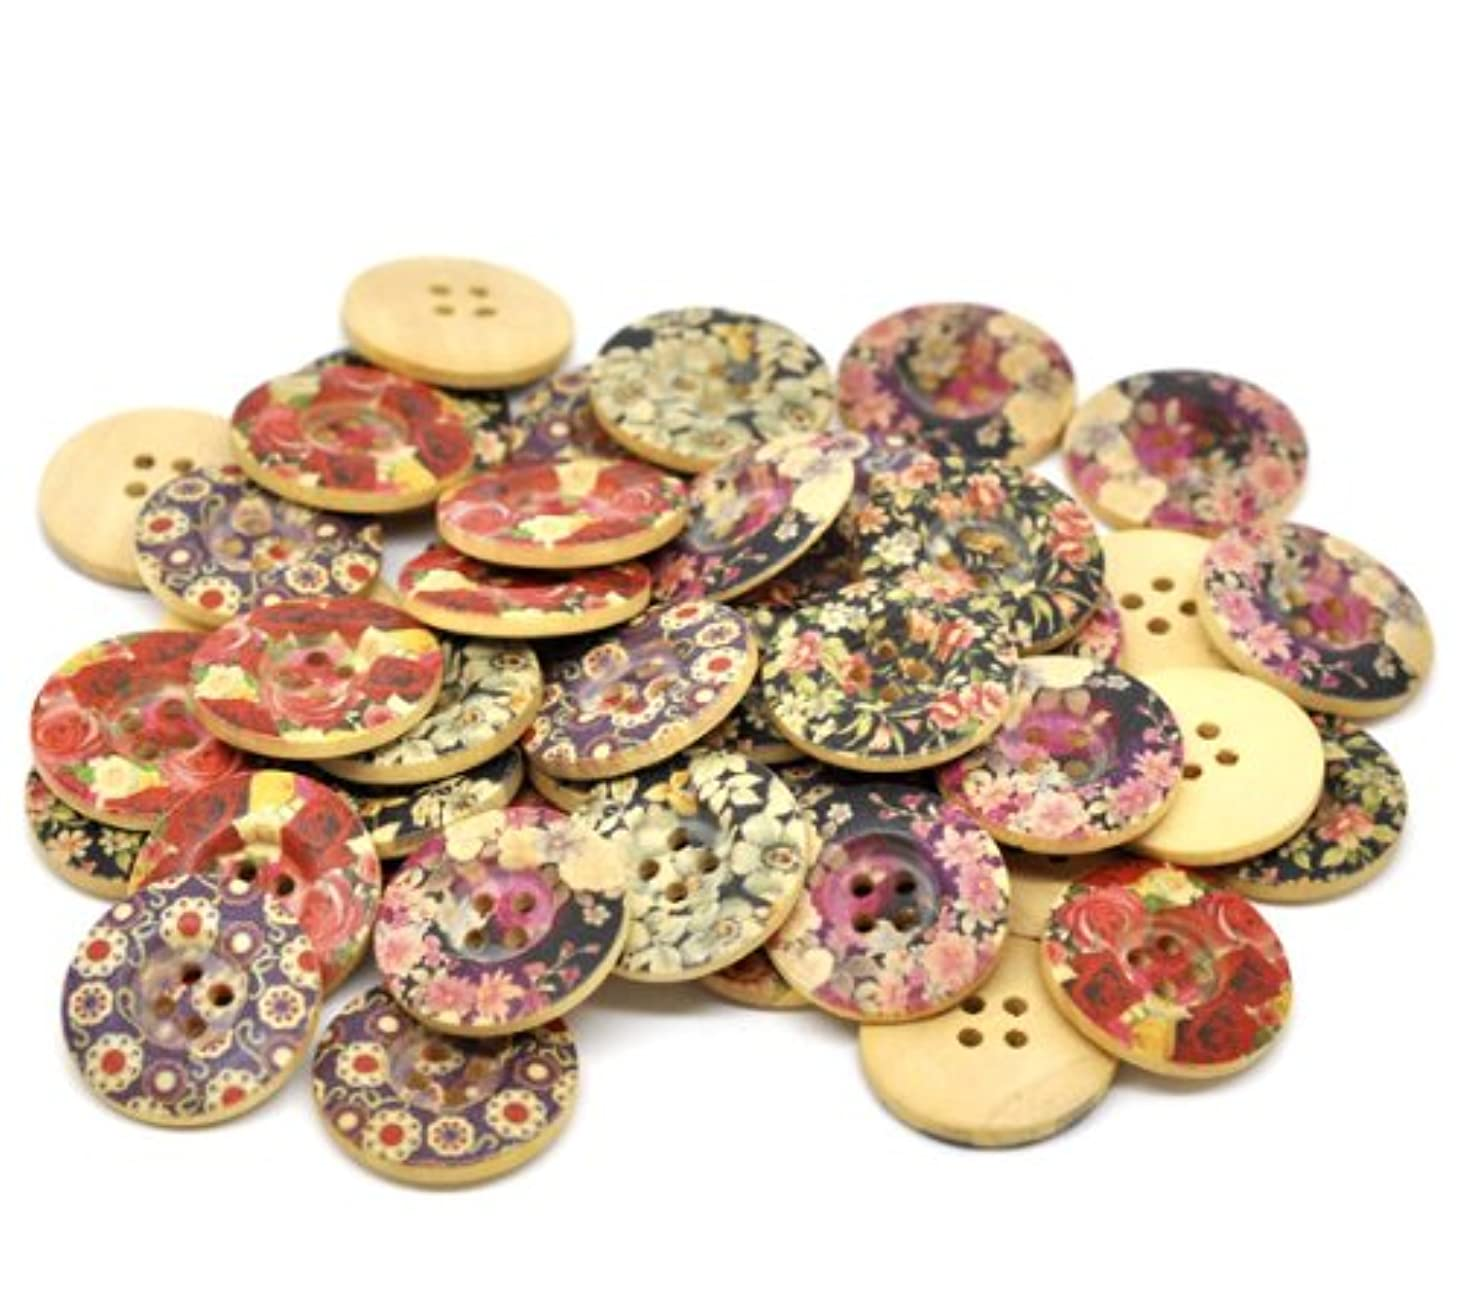 PEPPERLONELY Brand 50PC Flower 4 Hole Round Wood Buttons Scrapbooking Sewing Buttons 25mm (1 Inch)